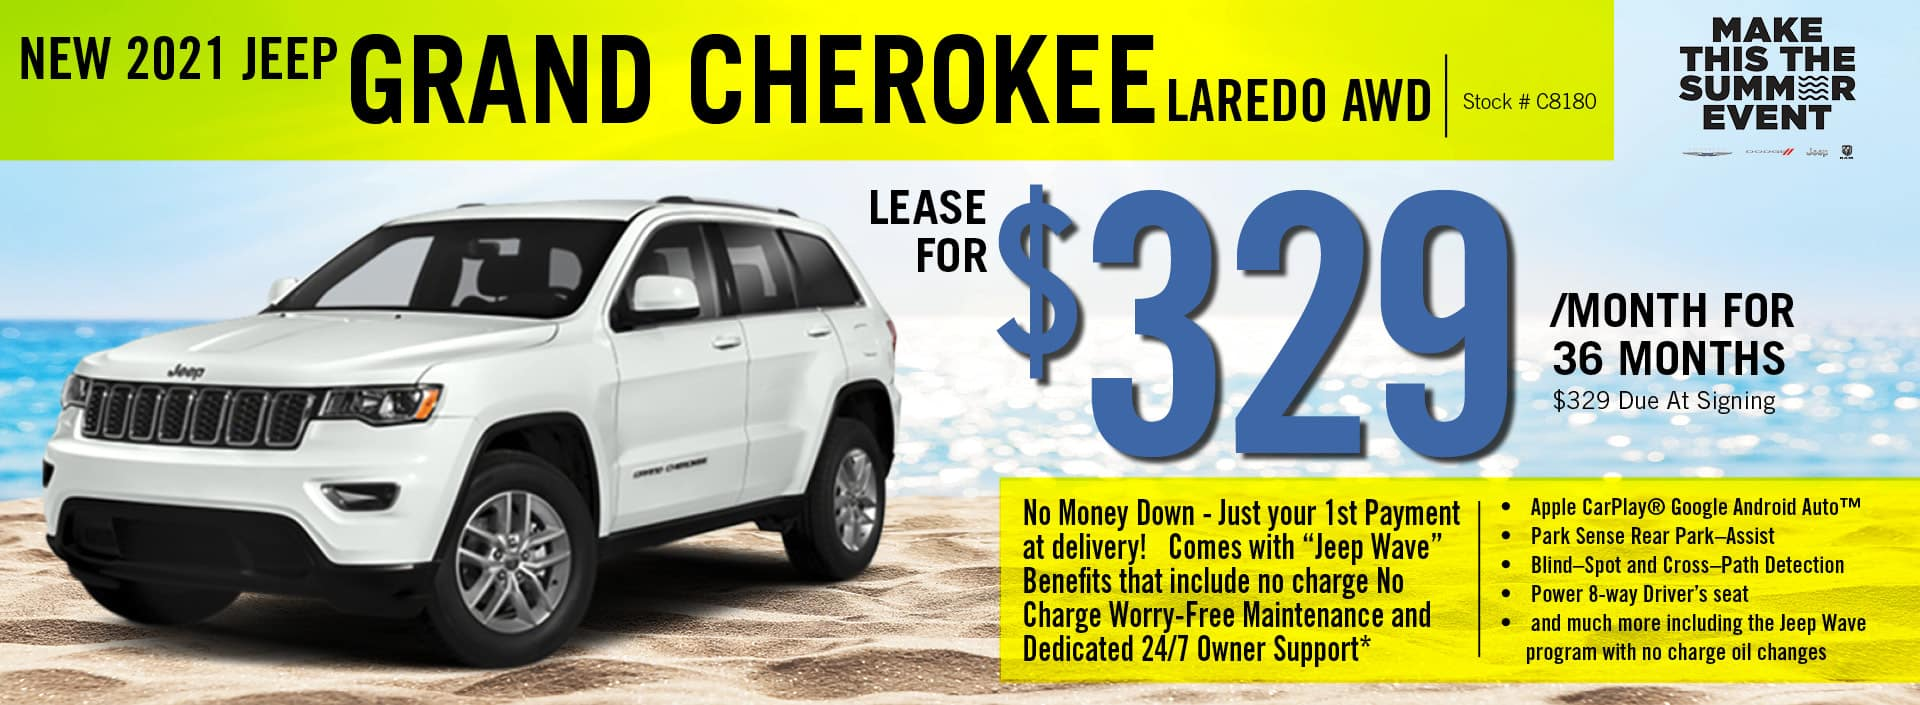 2021 Jeep Grand Cherokee Lease Offer   Barre, VT